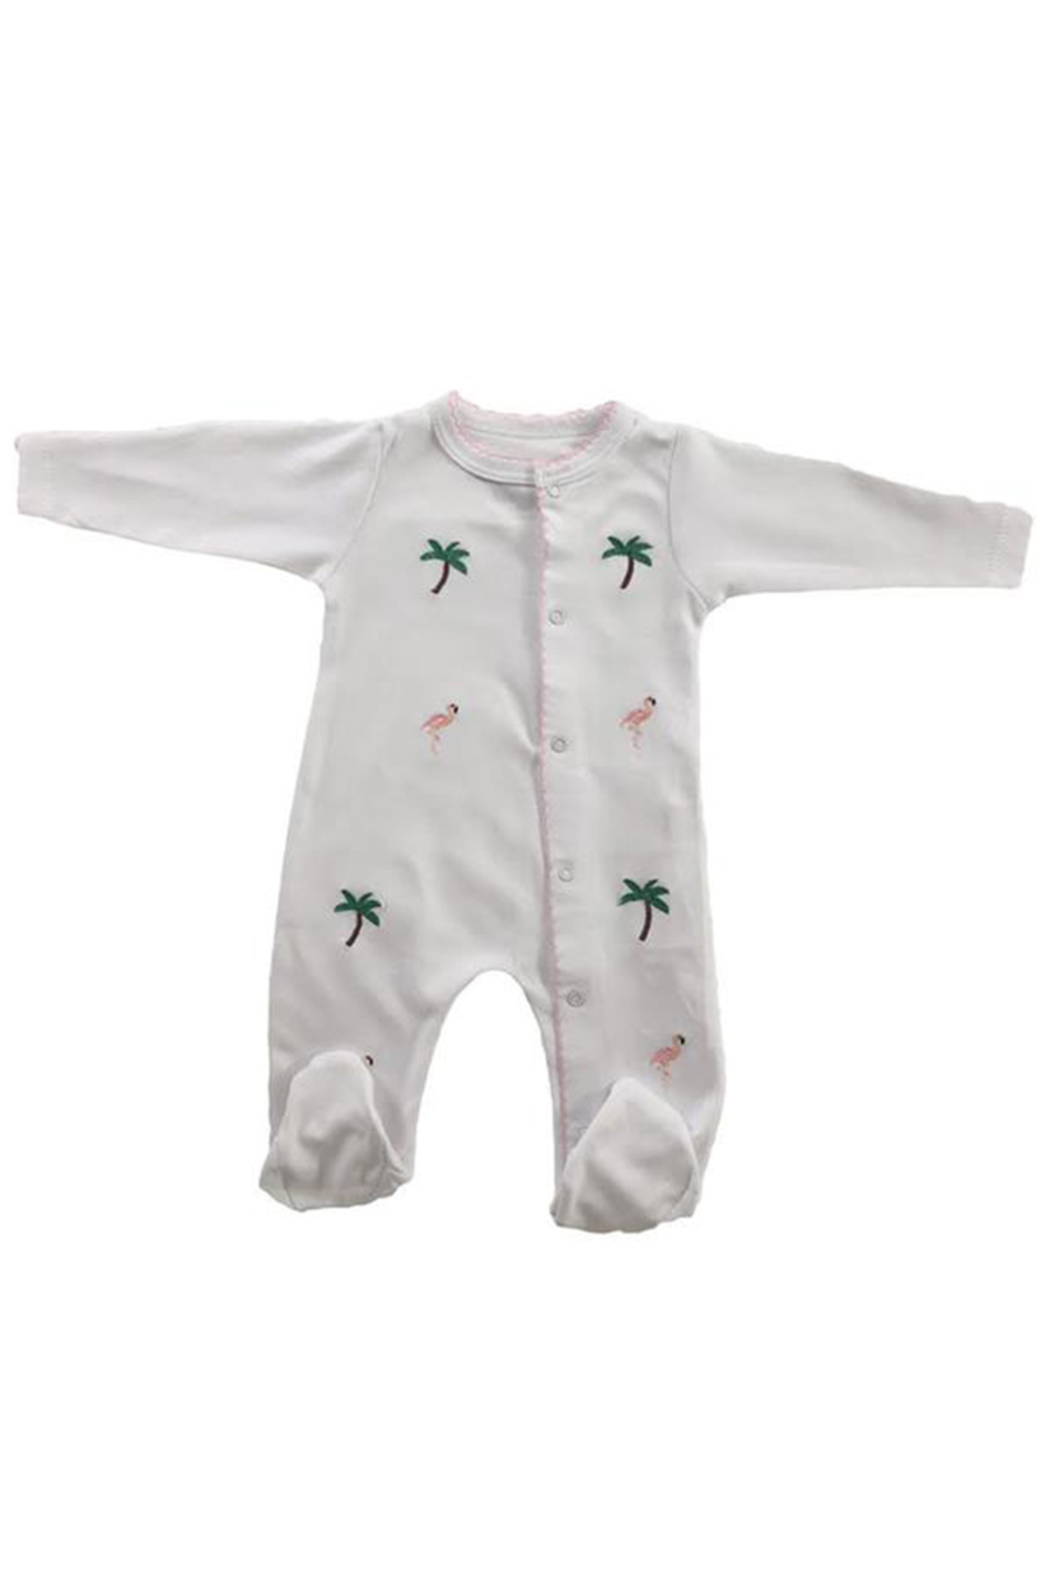 SAMMY & NAT Embroidered Footie Romper - Main Image